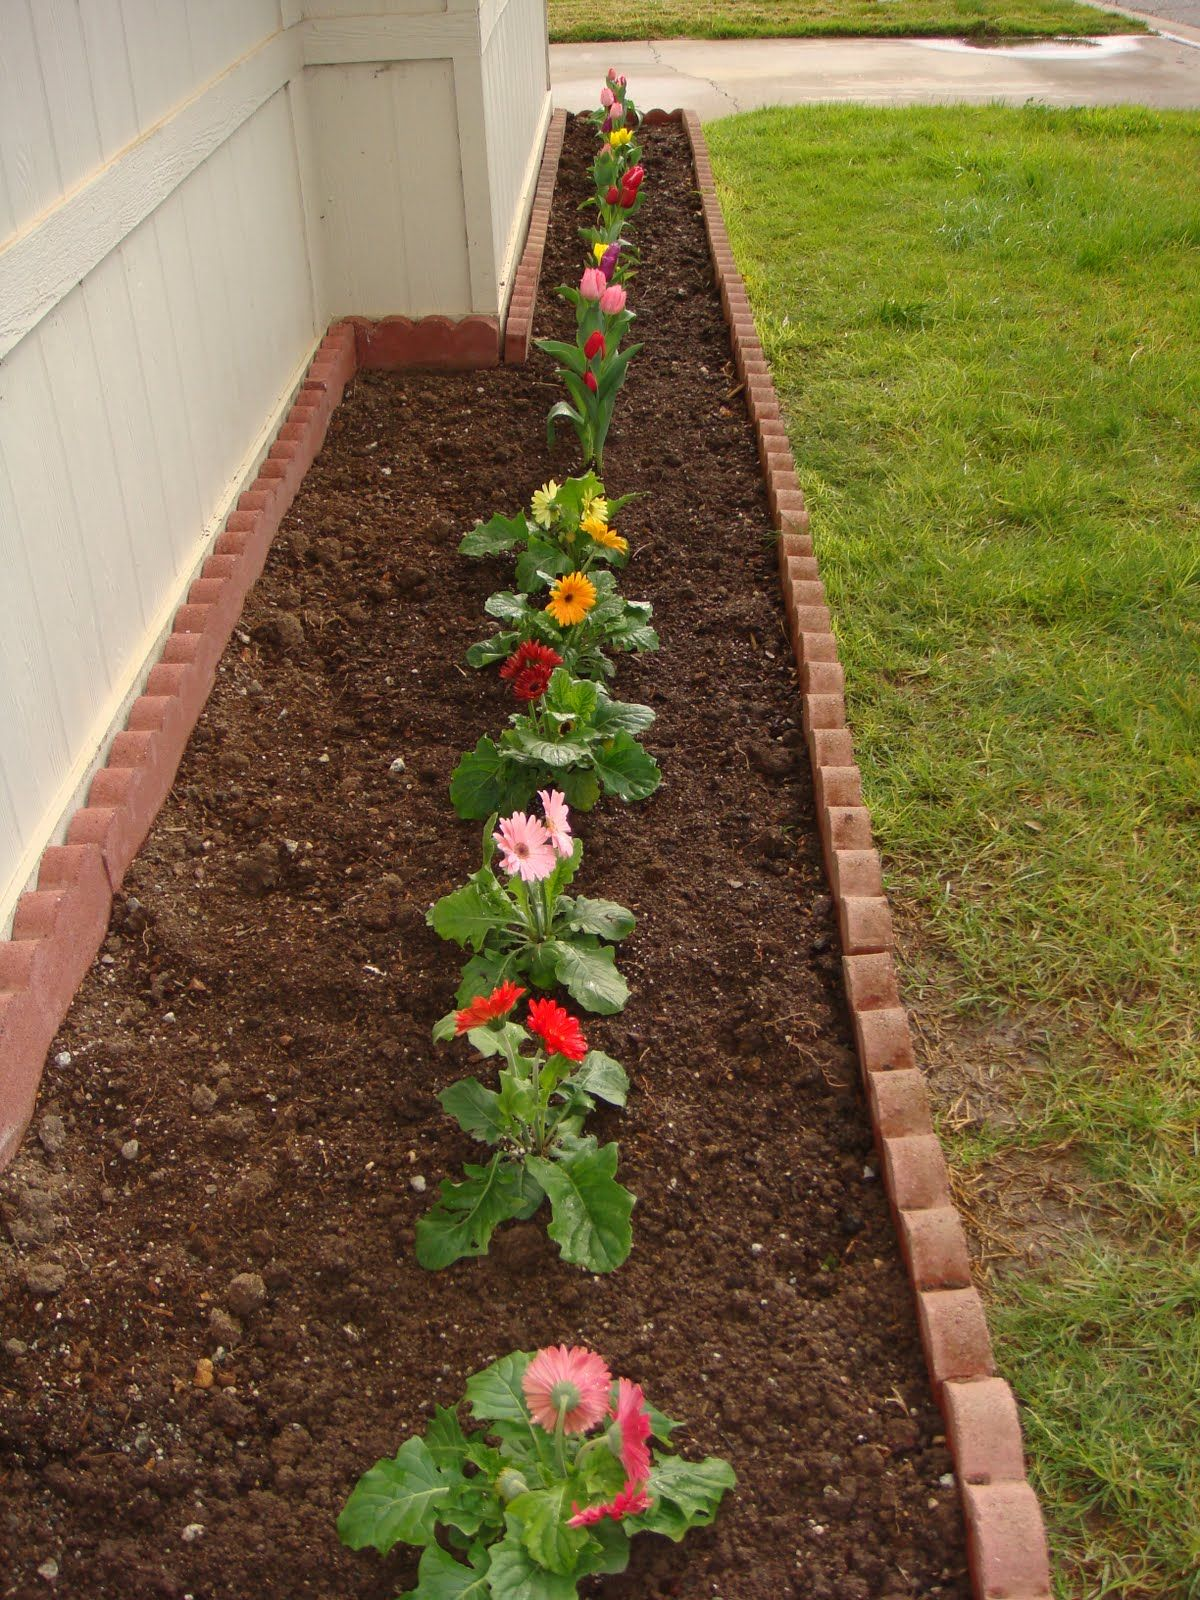 Charming small backyard flower gardens photo design ideas for Garden flower bed ideas